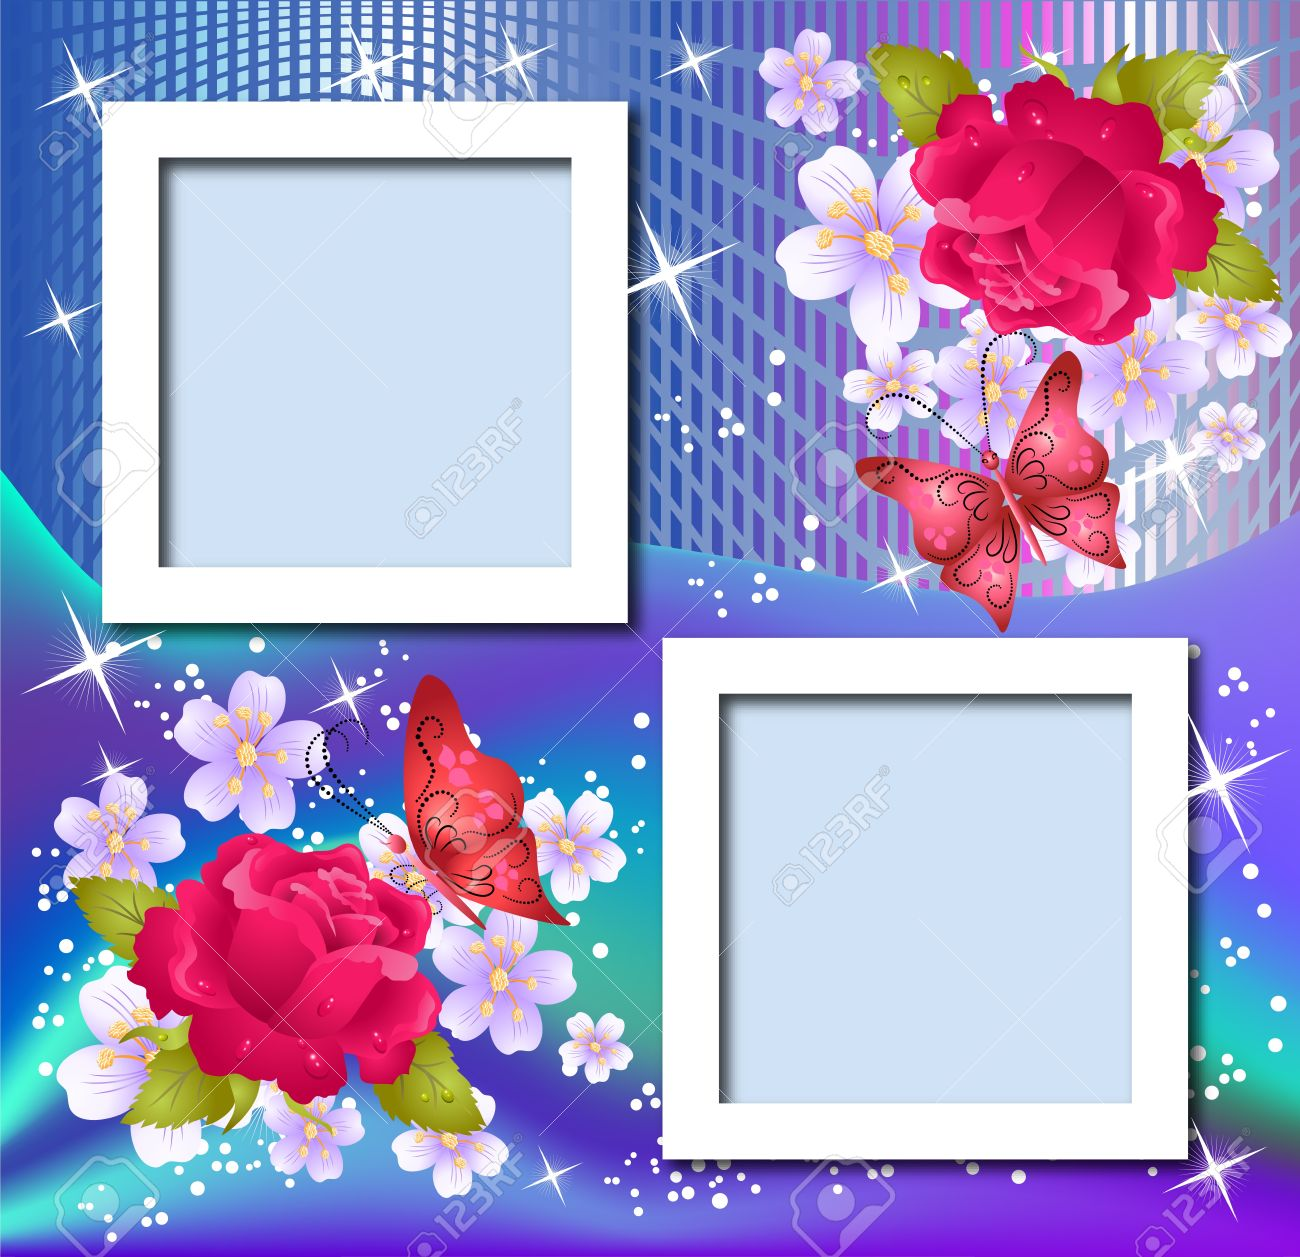 Design Photo Frames With Flowers And Butterfly Royalty Free Cliparts ...